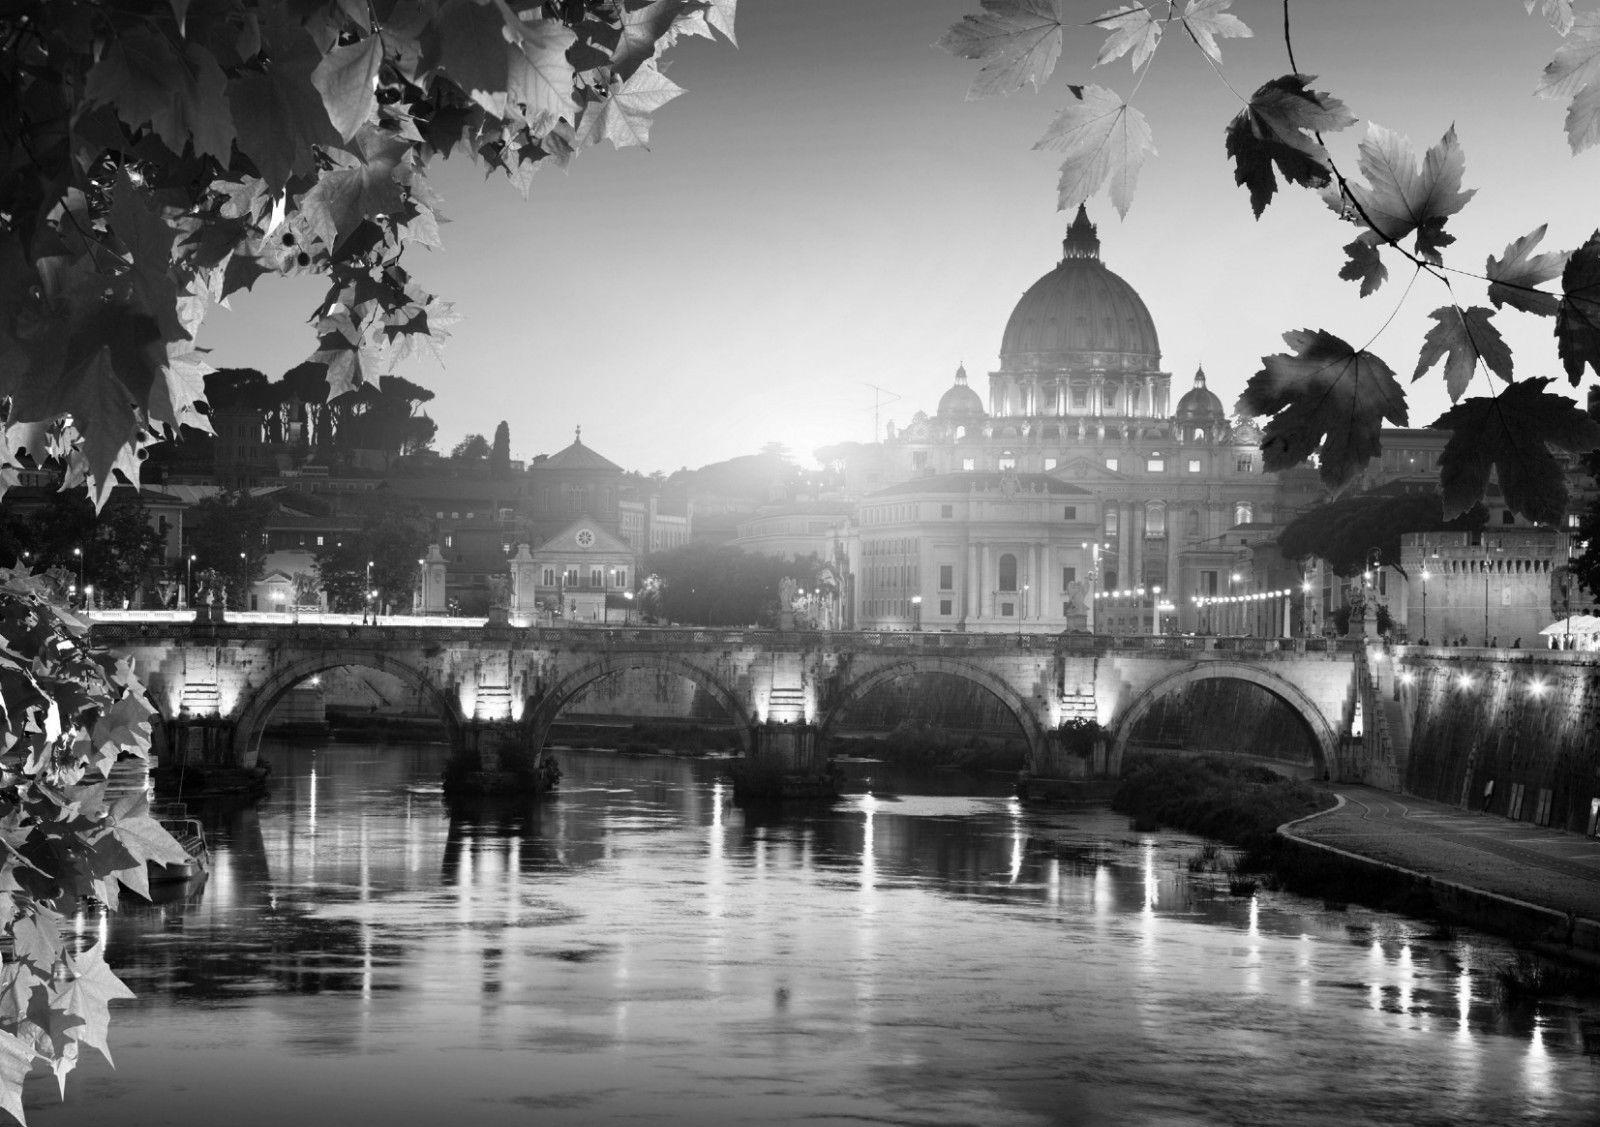 Rome italy landscape black white art silk poster 24x36inch 24x43inch wall decal quotes wall decal sale from wangzhi hao8 12 05 dhgate com